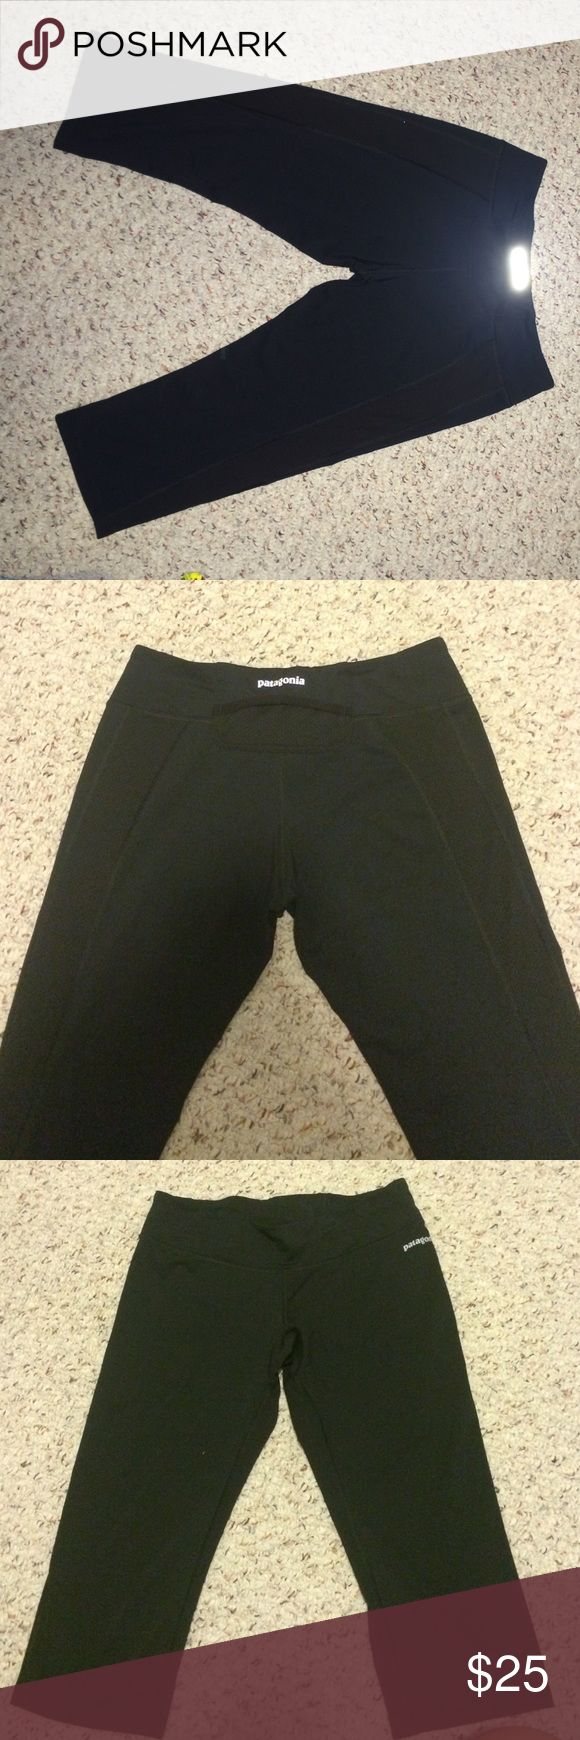 Patagonia leggings Great condition has breathable mesh panels on the back sides Patagonia Pants Leggings